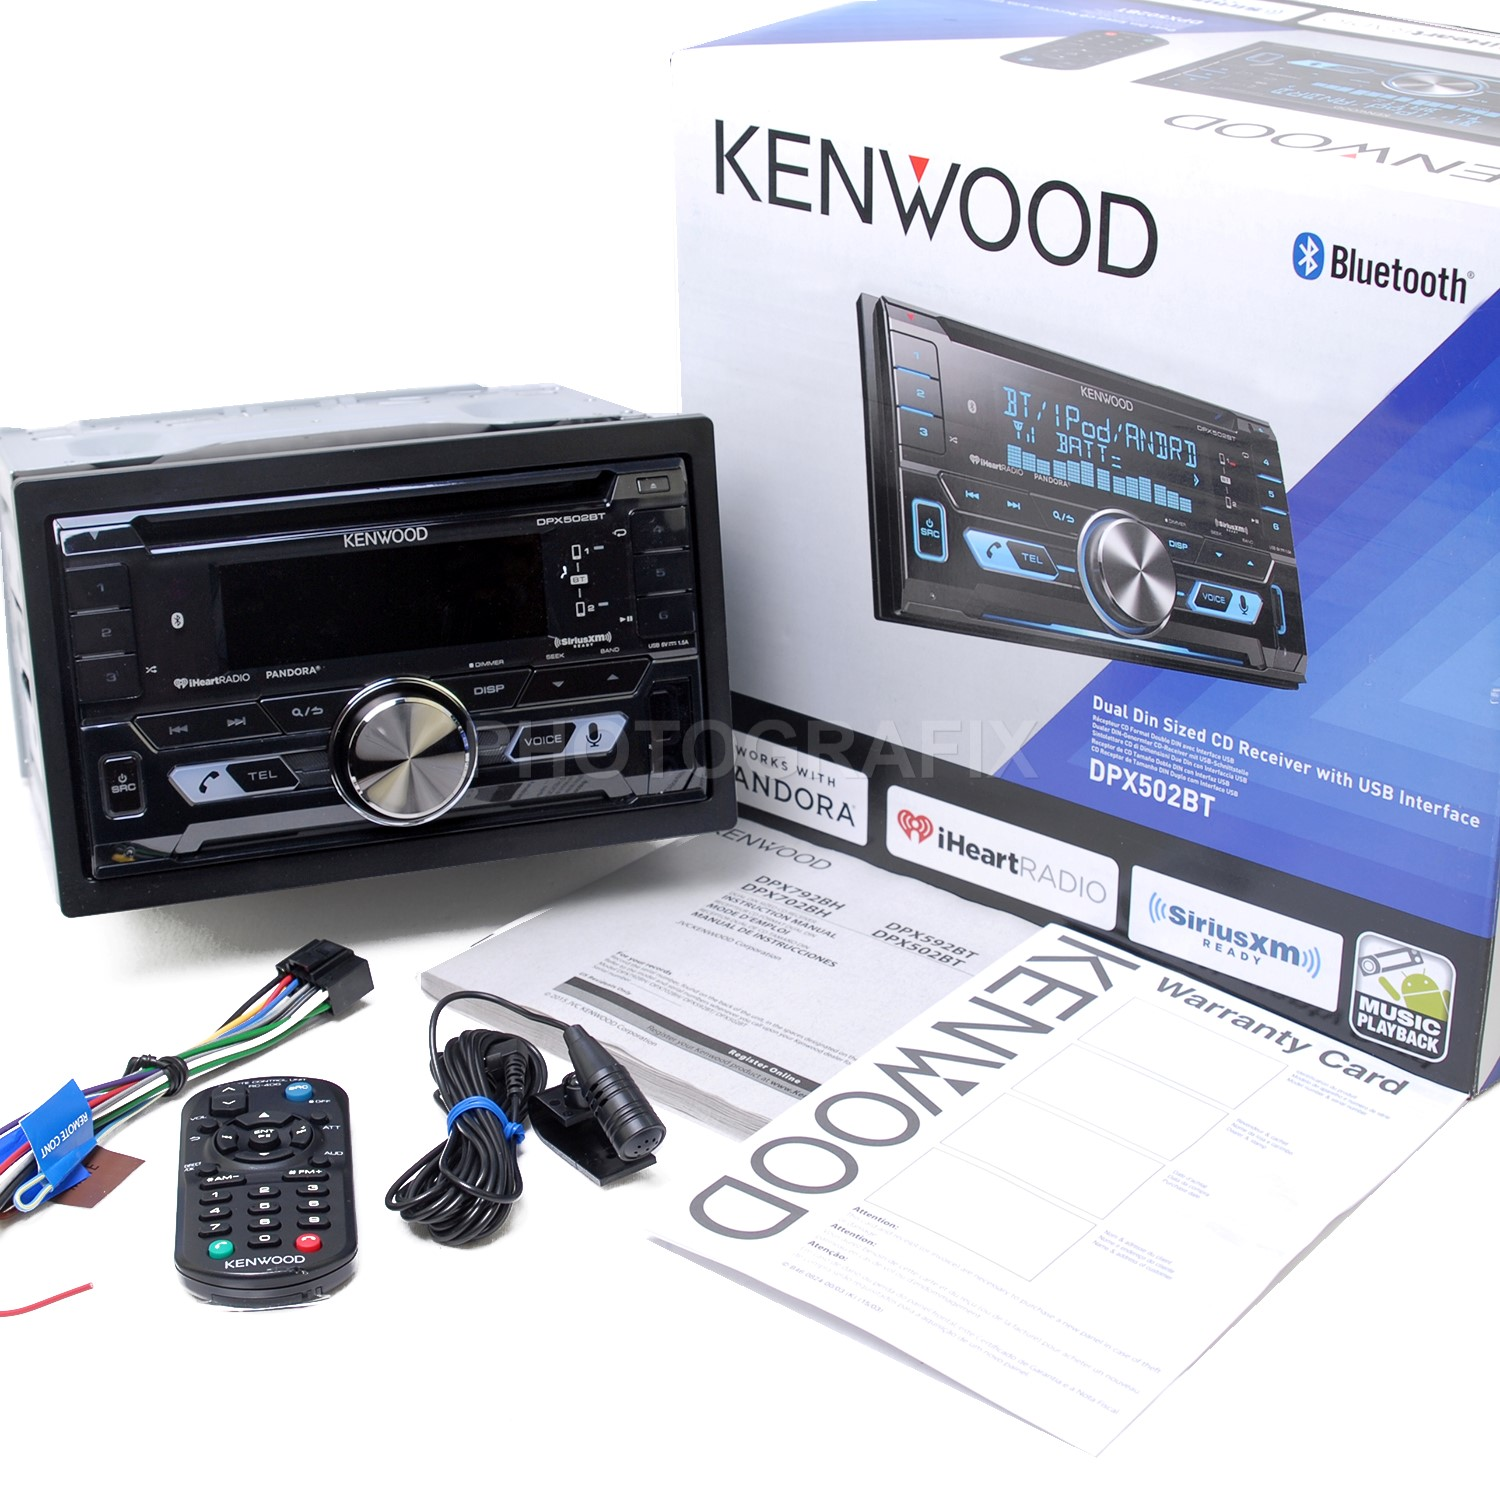 kenwood dpx501bt wire diagram kenwood image wiring kenwood double din bluetooth cd player usb aux car radio receiver on kenwood dpx501bt wire diagram